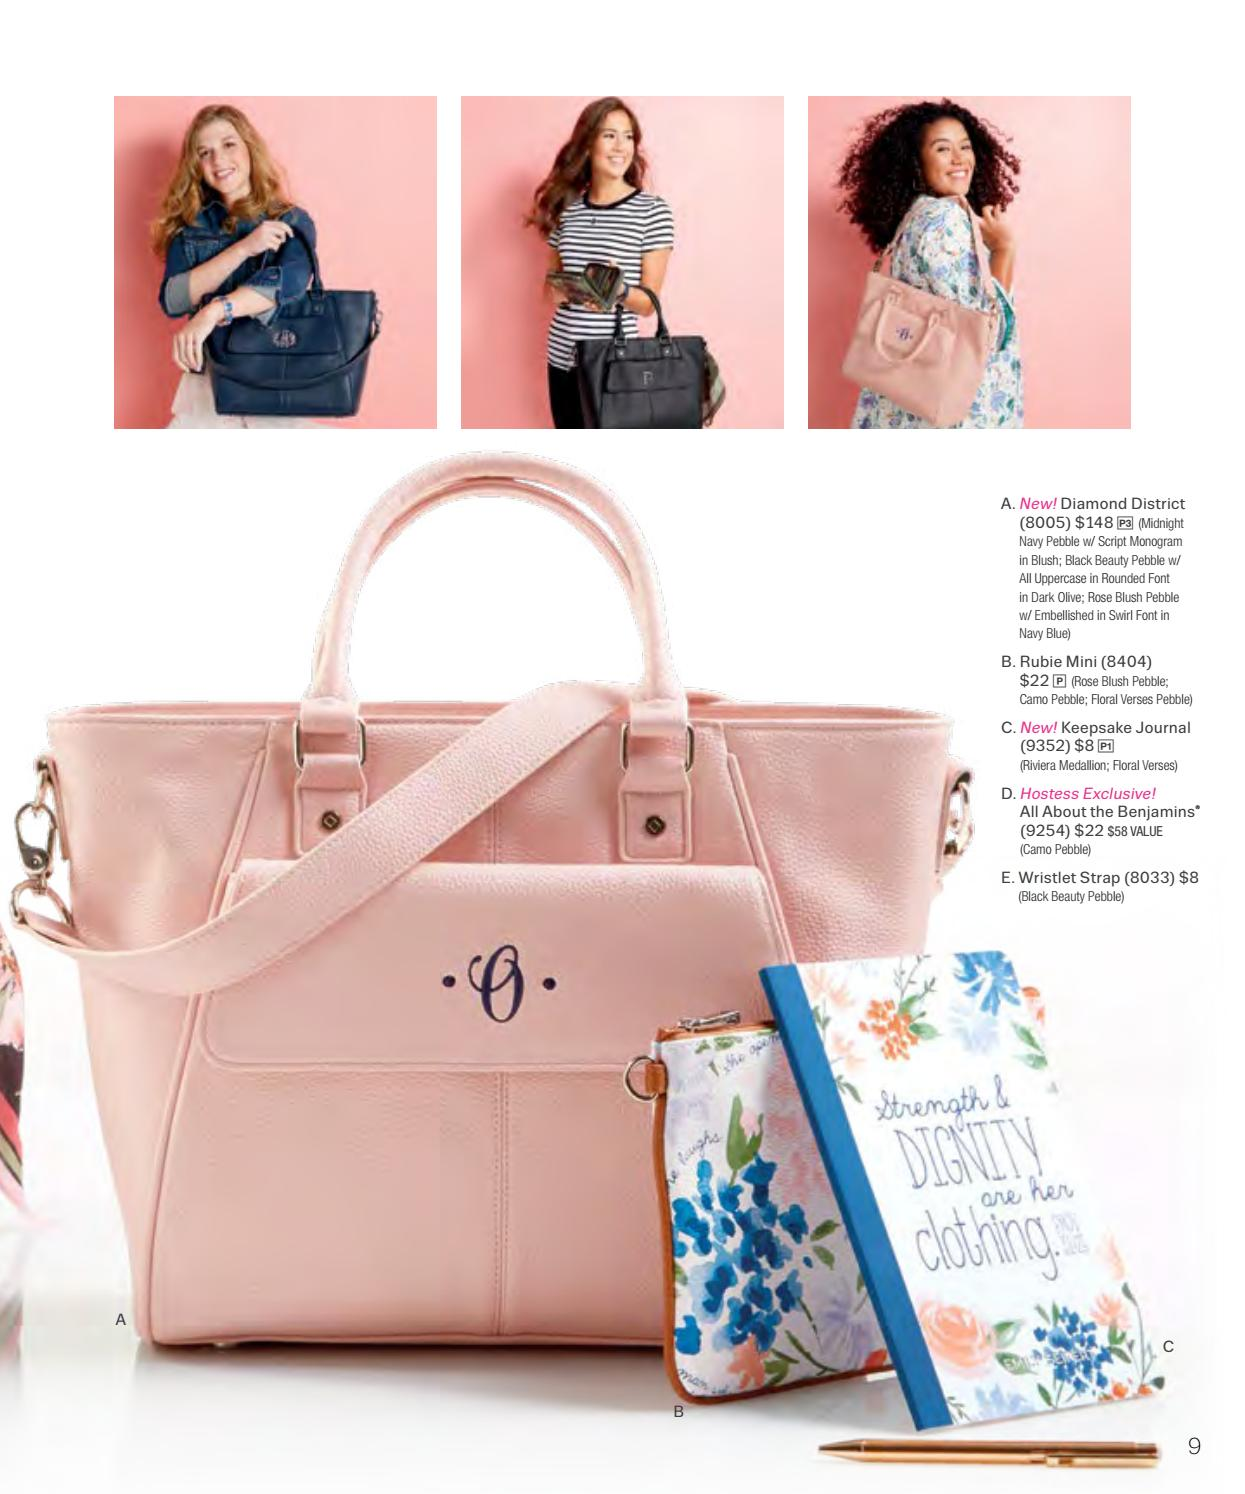 cd44e010440 Thirty-one Winter Collection Guide Book 2018-2019 by Janelle ...